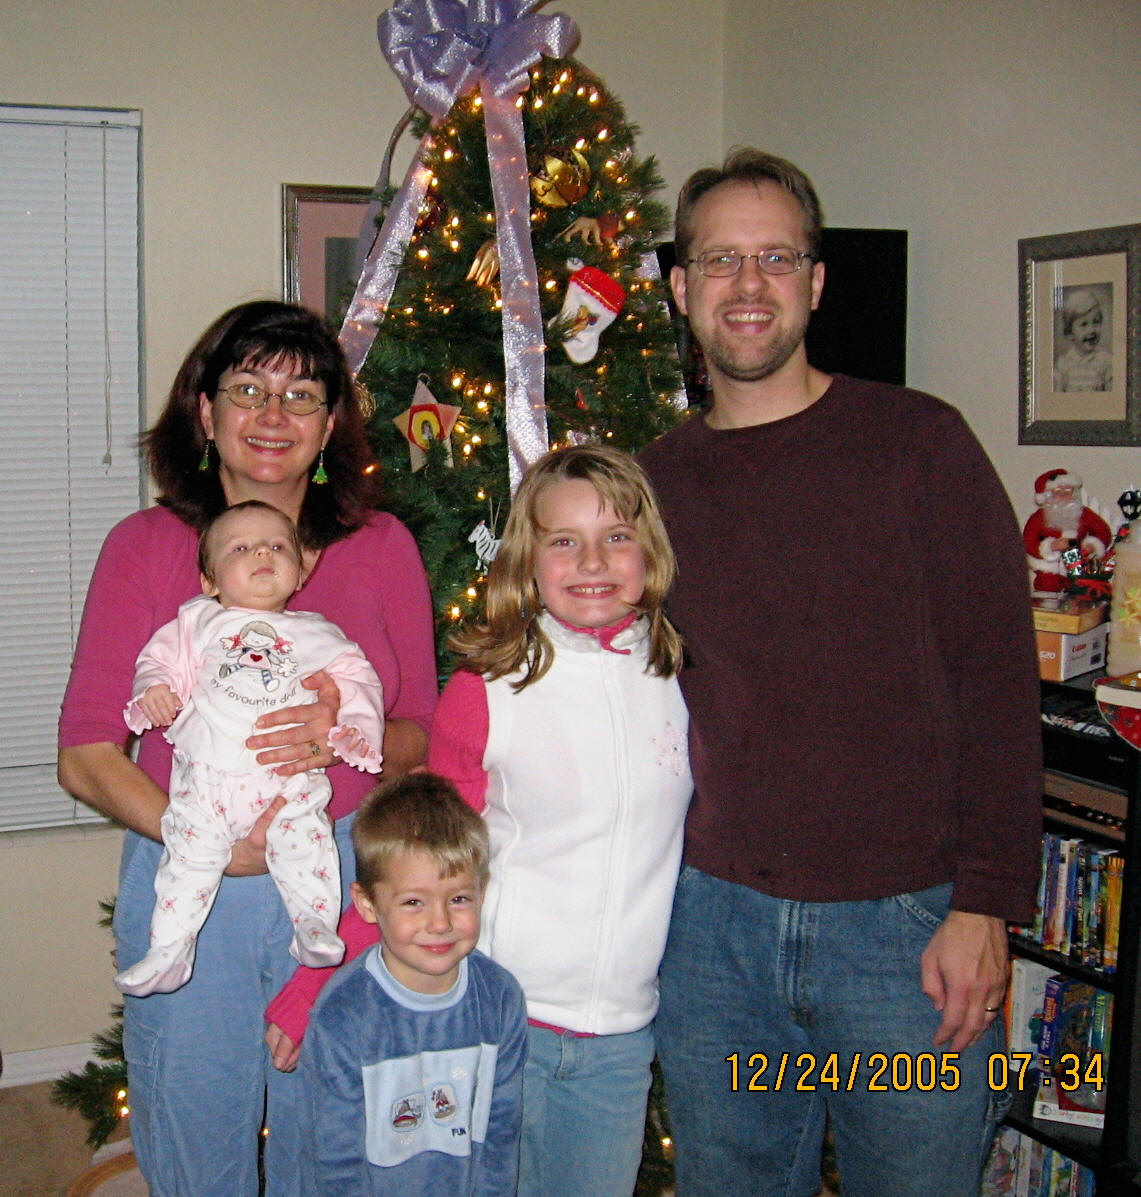 Heike and her family in December 2005